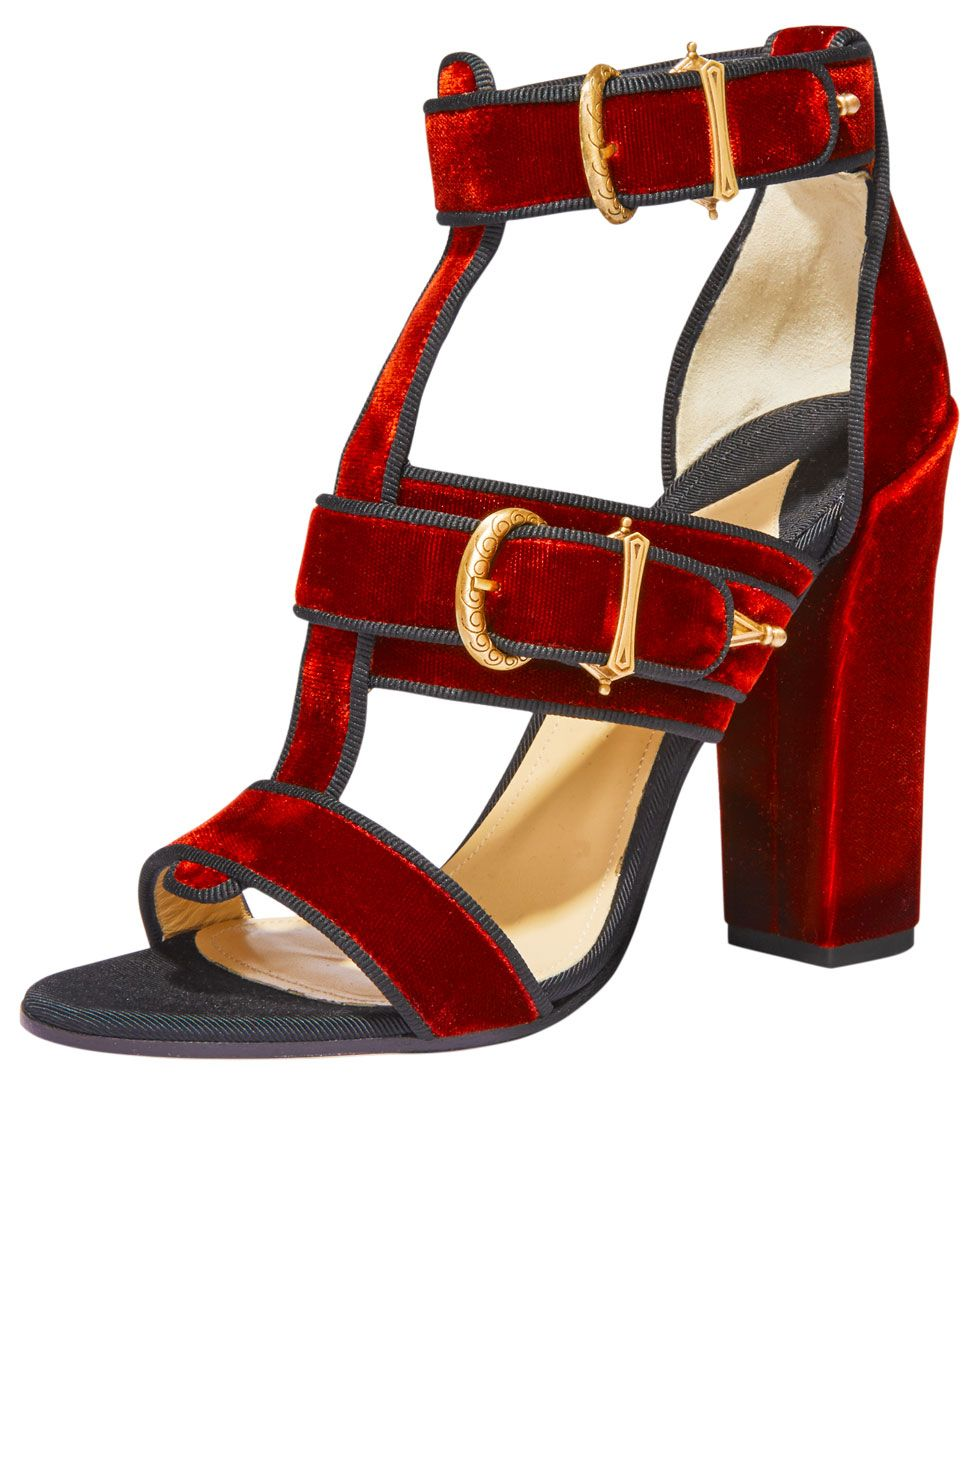 "<p><strong>Paul Andrew</strong> sandals, $995, <a href=""http://www.nordstrom.com/"">nordstrom.com</a>.</p>"